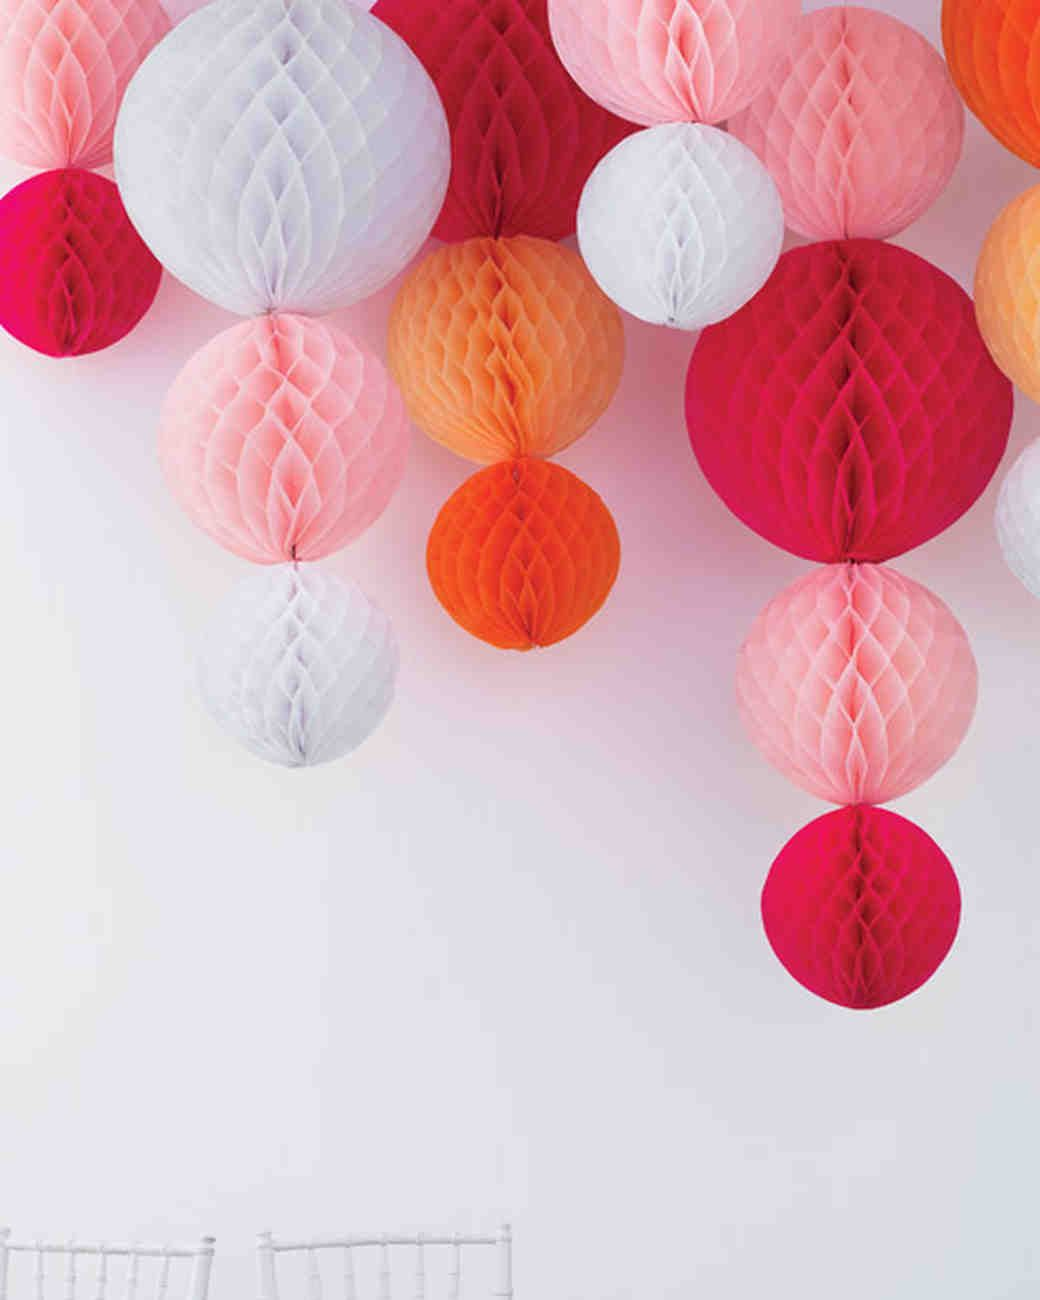 Diy wedding ideas diy wedding garlands and centerpieces paper ball chandeliers by martha stewart easily made with premade honeycomb tissue balls in combination with paper lanterns reception perhaps arubaitofo Choice Image